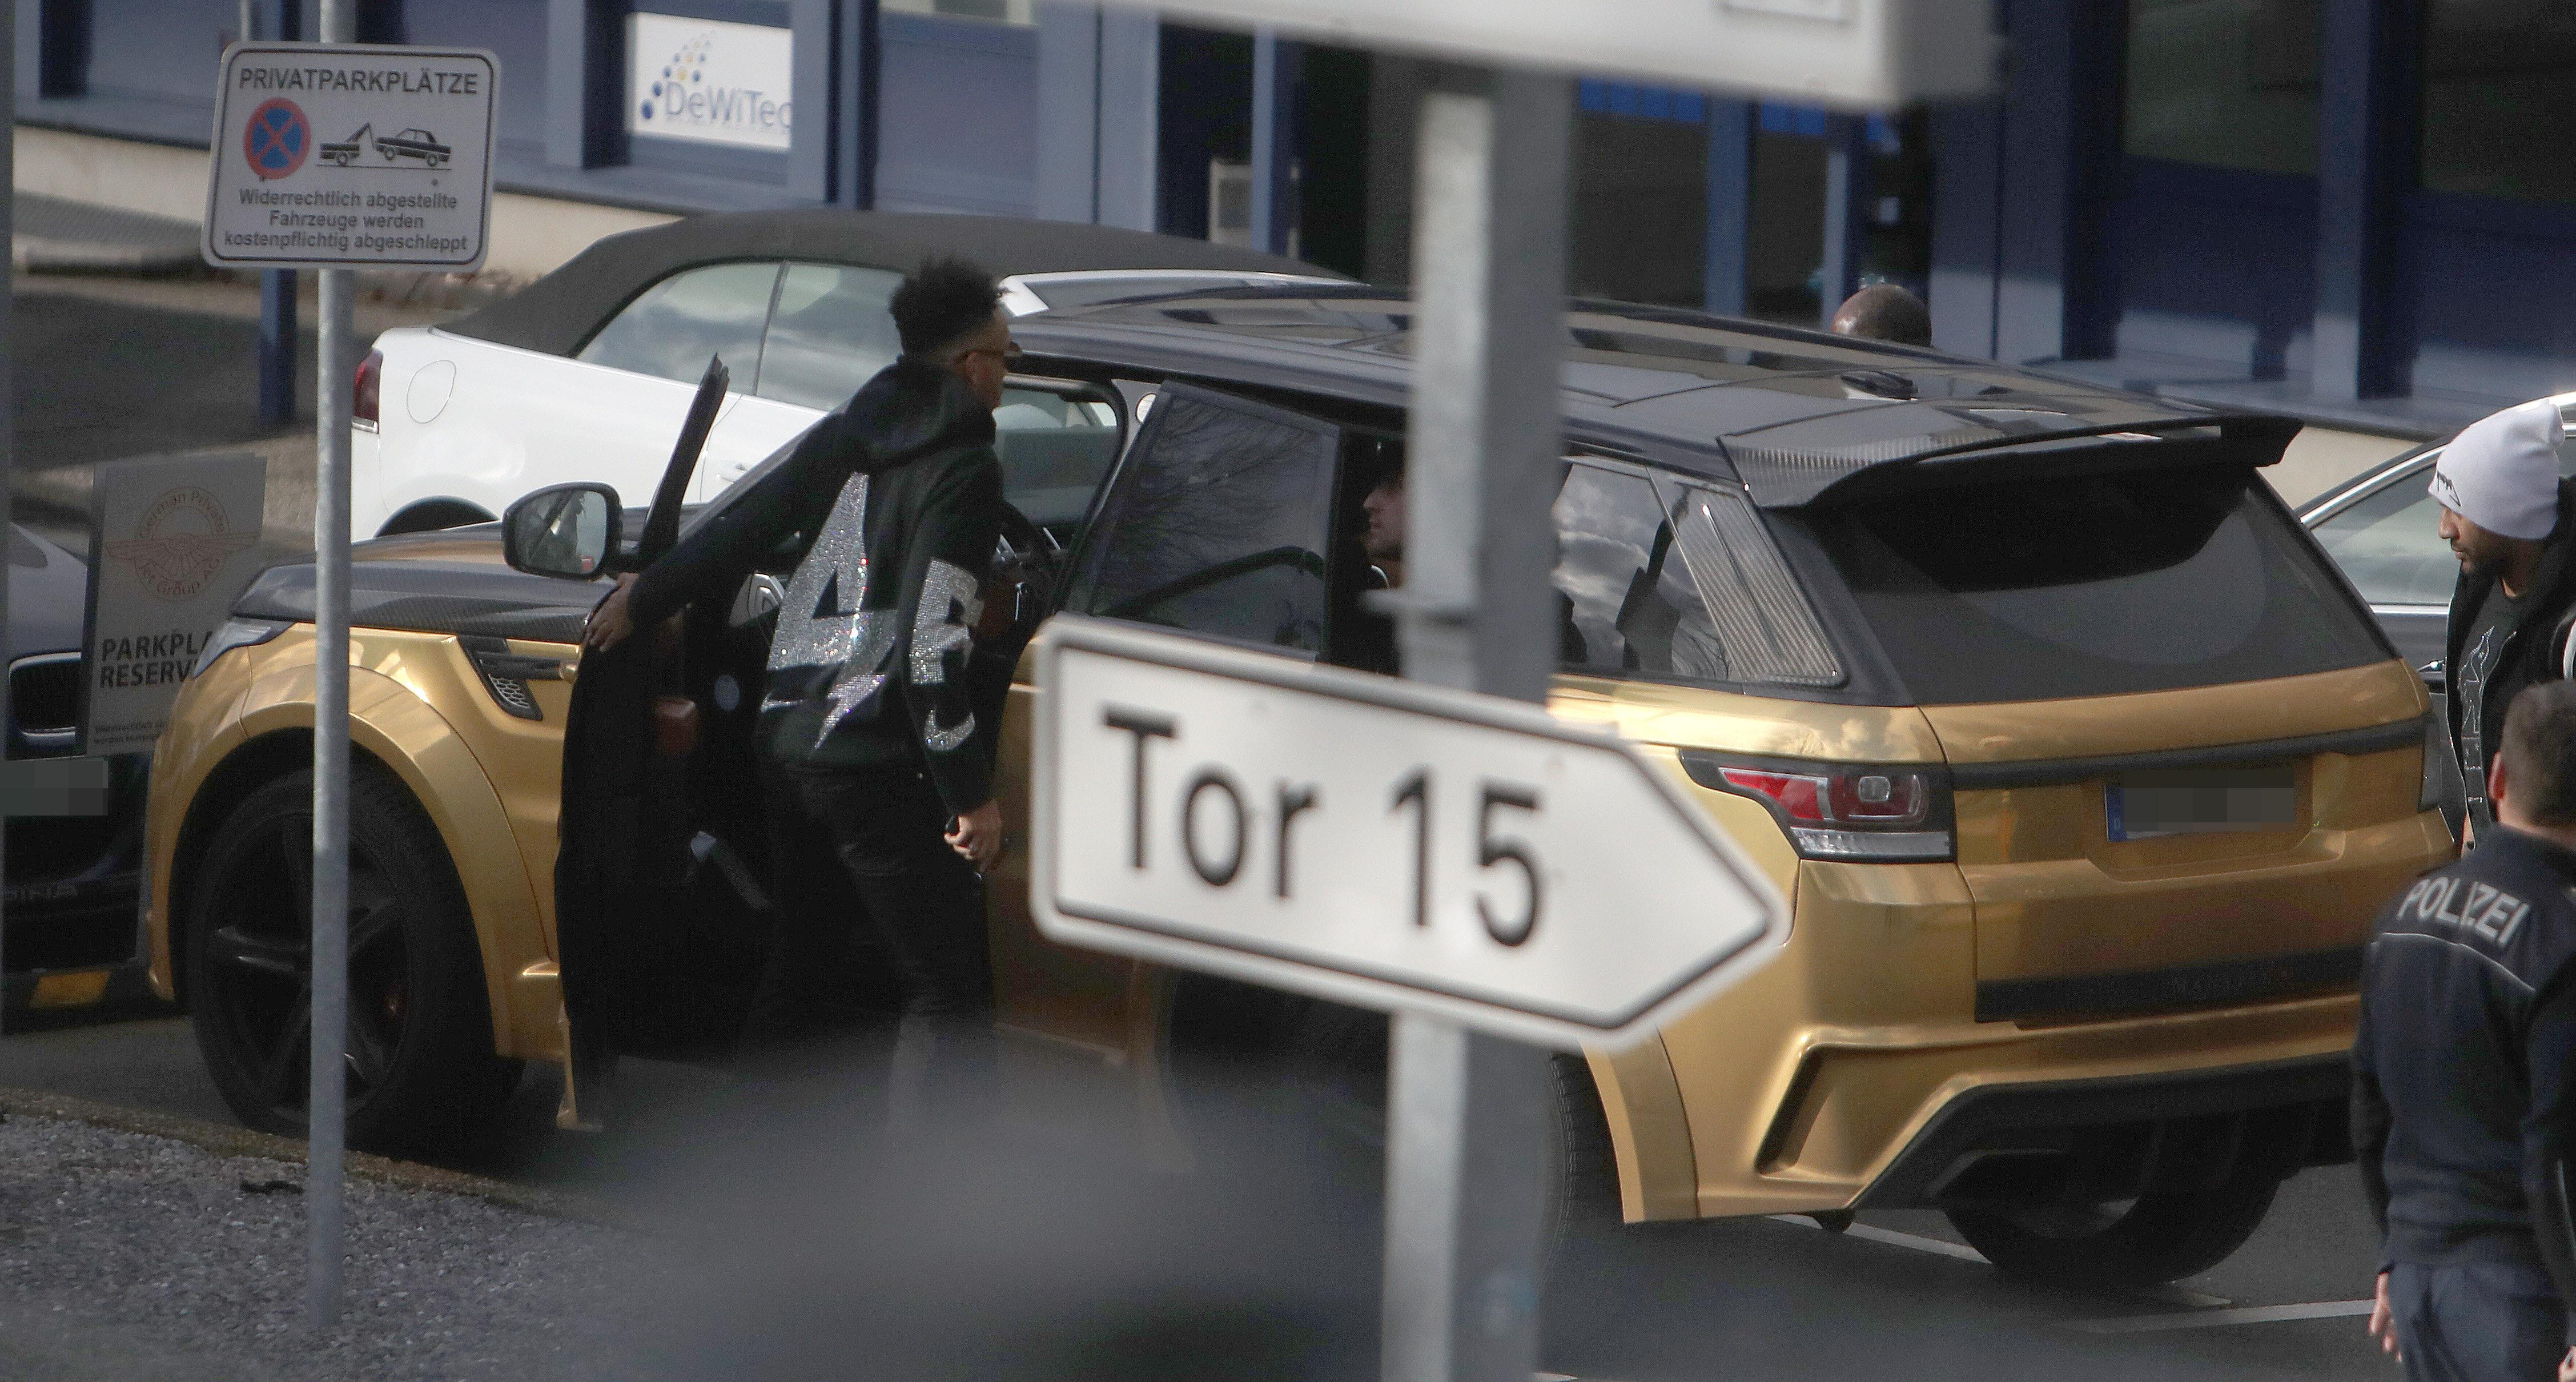 Aubameyang was spotted at Dortmund airport on Tuesday morning